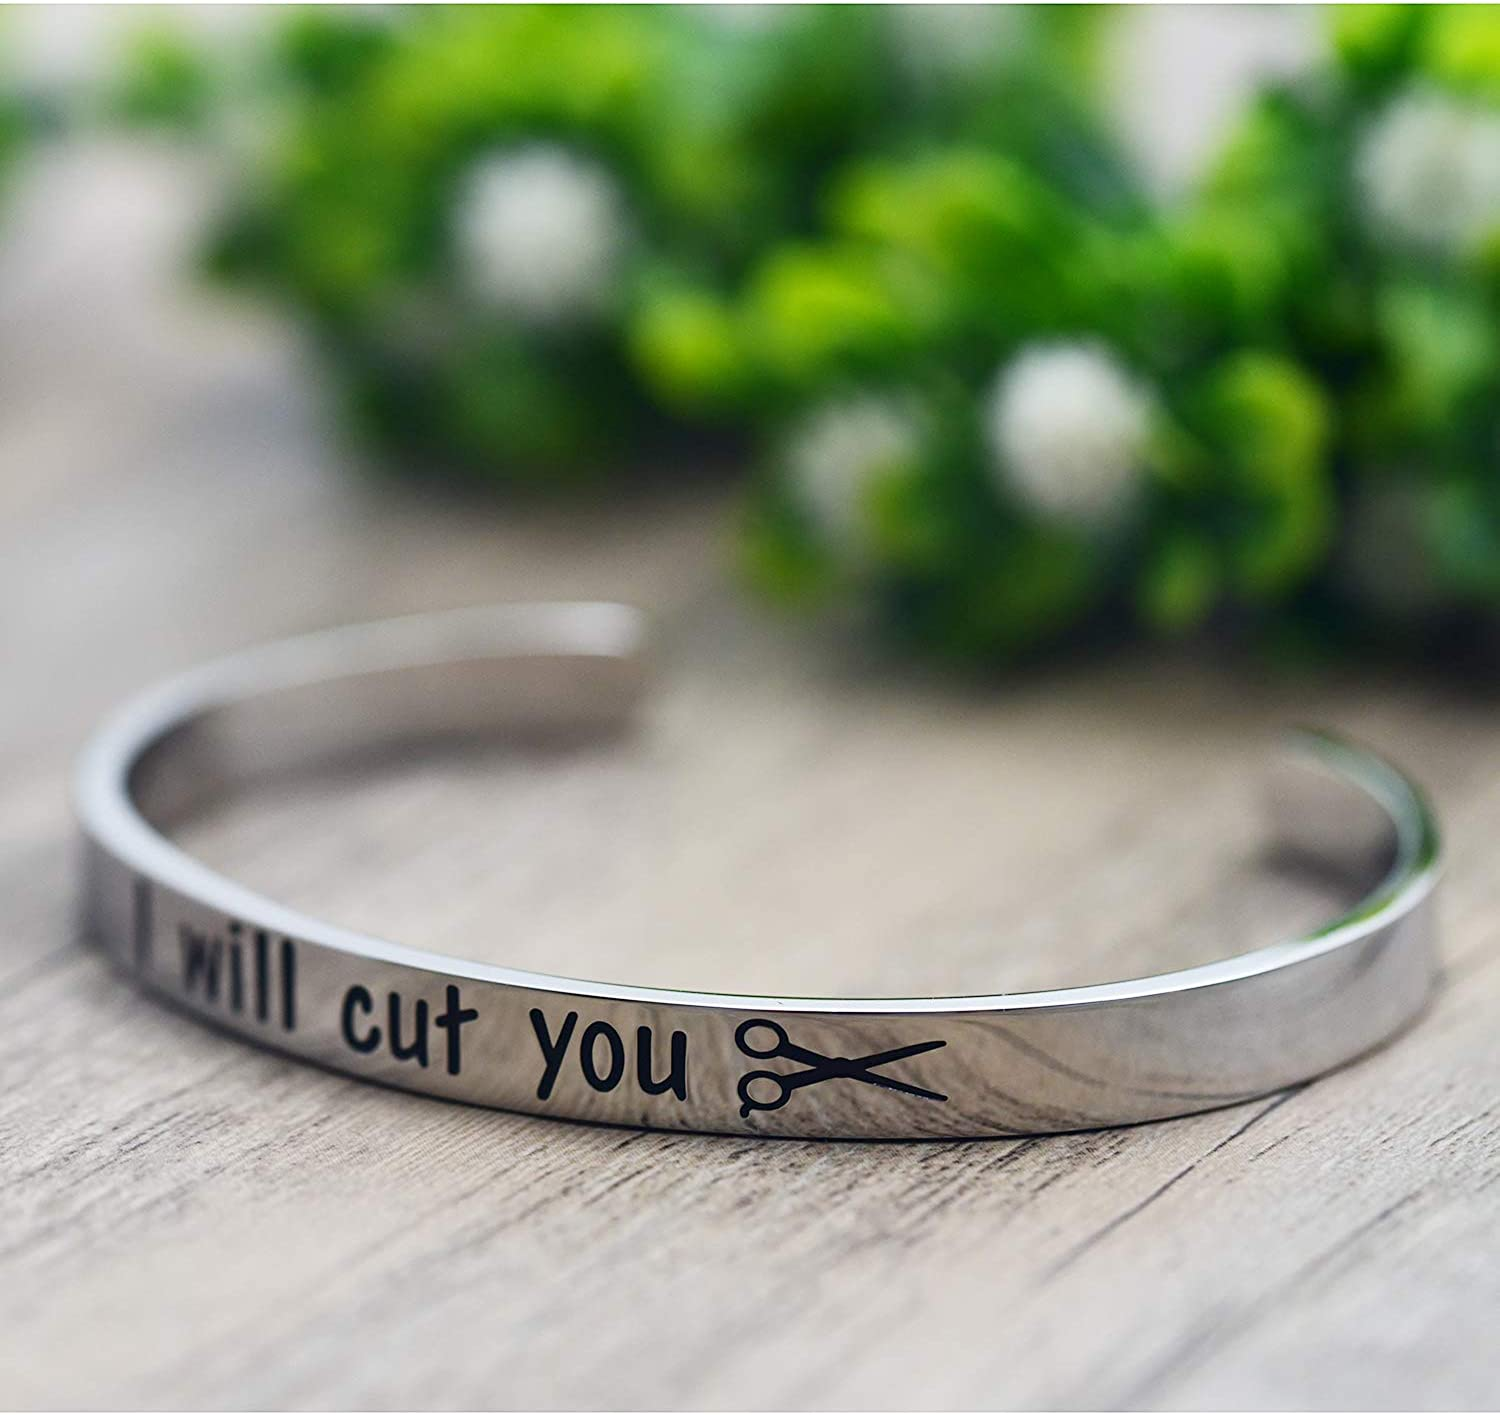 Gift for Stylist Gift for Cosmetology Student Melix Home Cosmetology Graduation Gift 2020 I Will Cut You Keychain Bracelet Enamel Pin Gift for Hairdresser